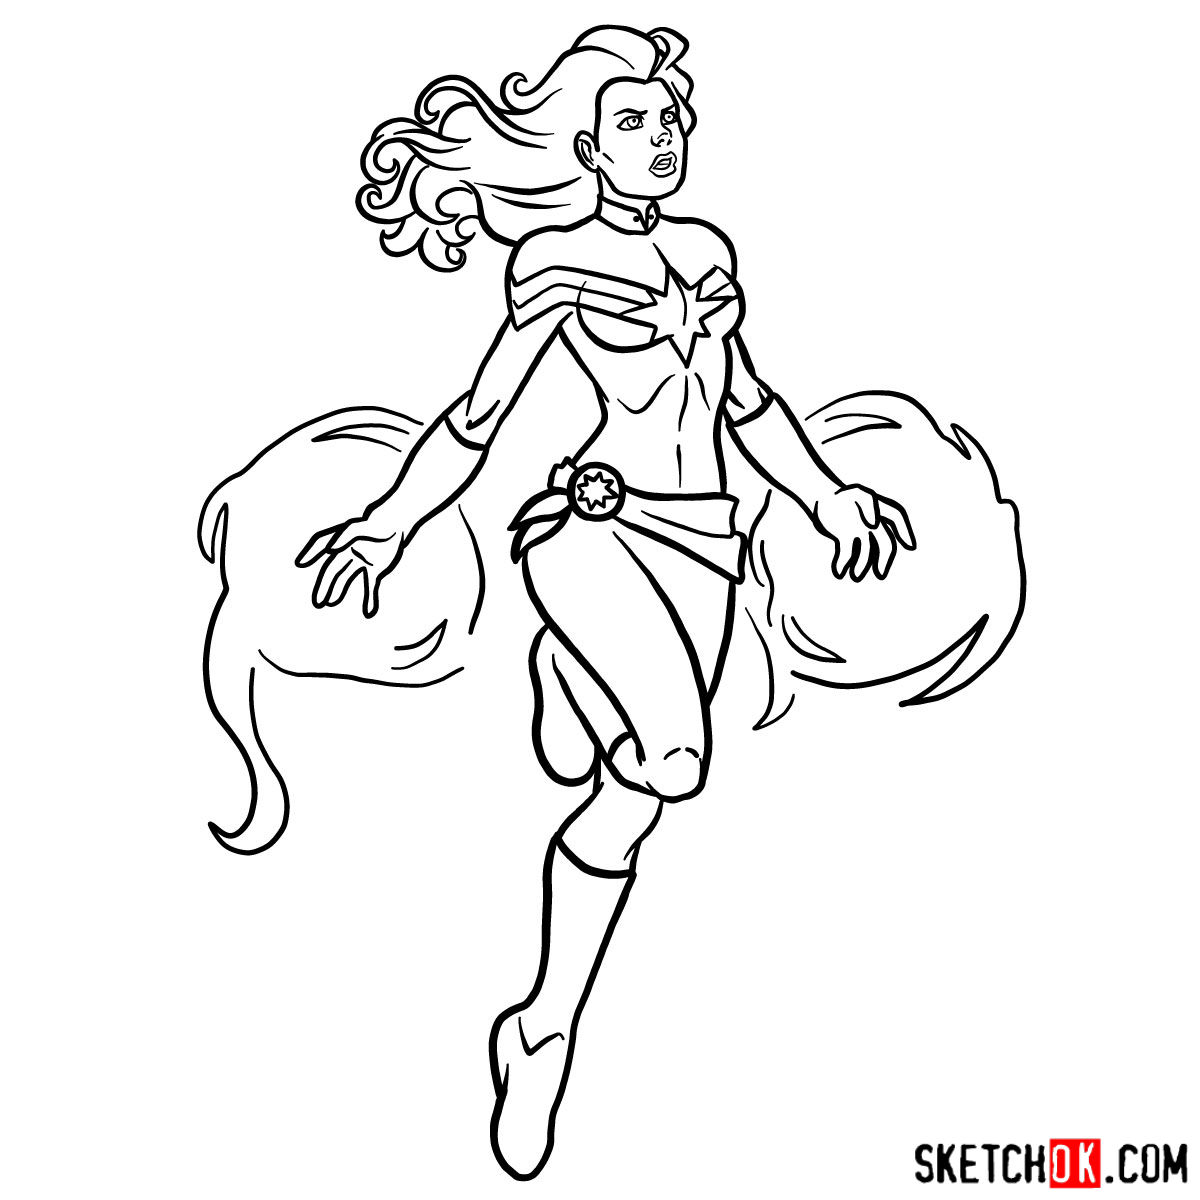 How to draw Captain Marvel (Carol Danvers) - step 15